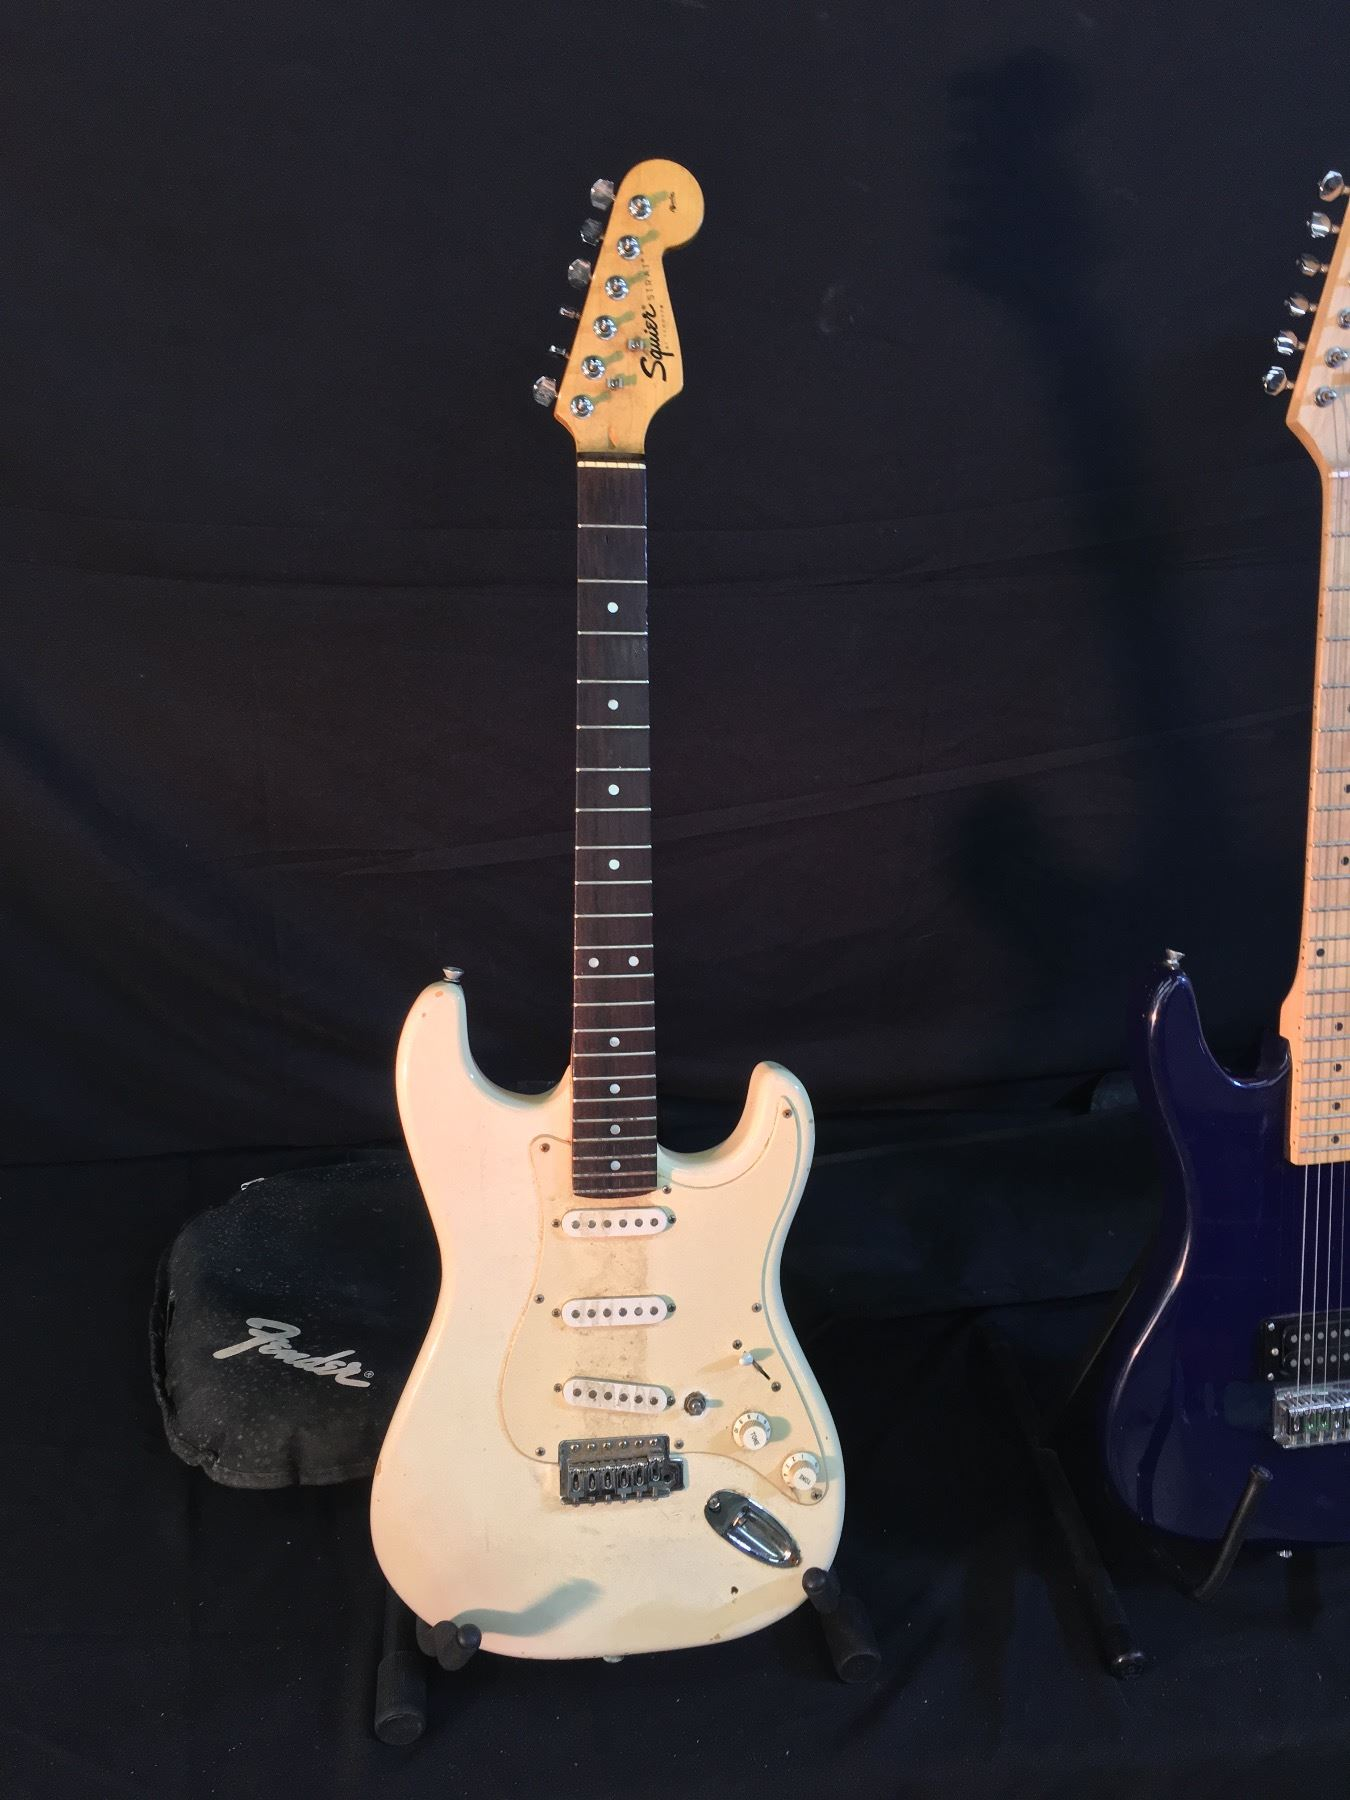 Wonderful Bulldog Security Products Big Free Technical Service Bulletins Online Solid Two Humbuckers One Volume One Tone Tsb Search Youthful Remote Start Wiring PinkBulldog Remote Start Installation 3 GUITARS: SQUIER STRAT WITH SOFT SHELL CASE, \u0027B\u0027 SINGLE HUMBUCKER ..